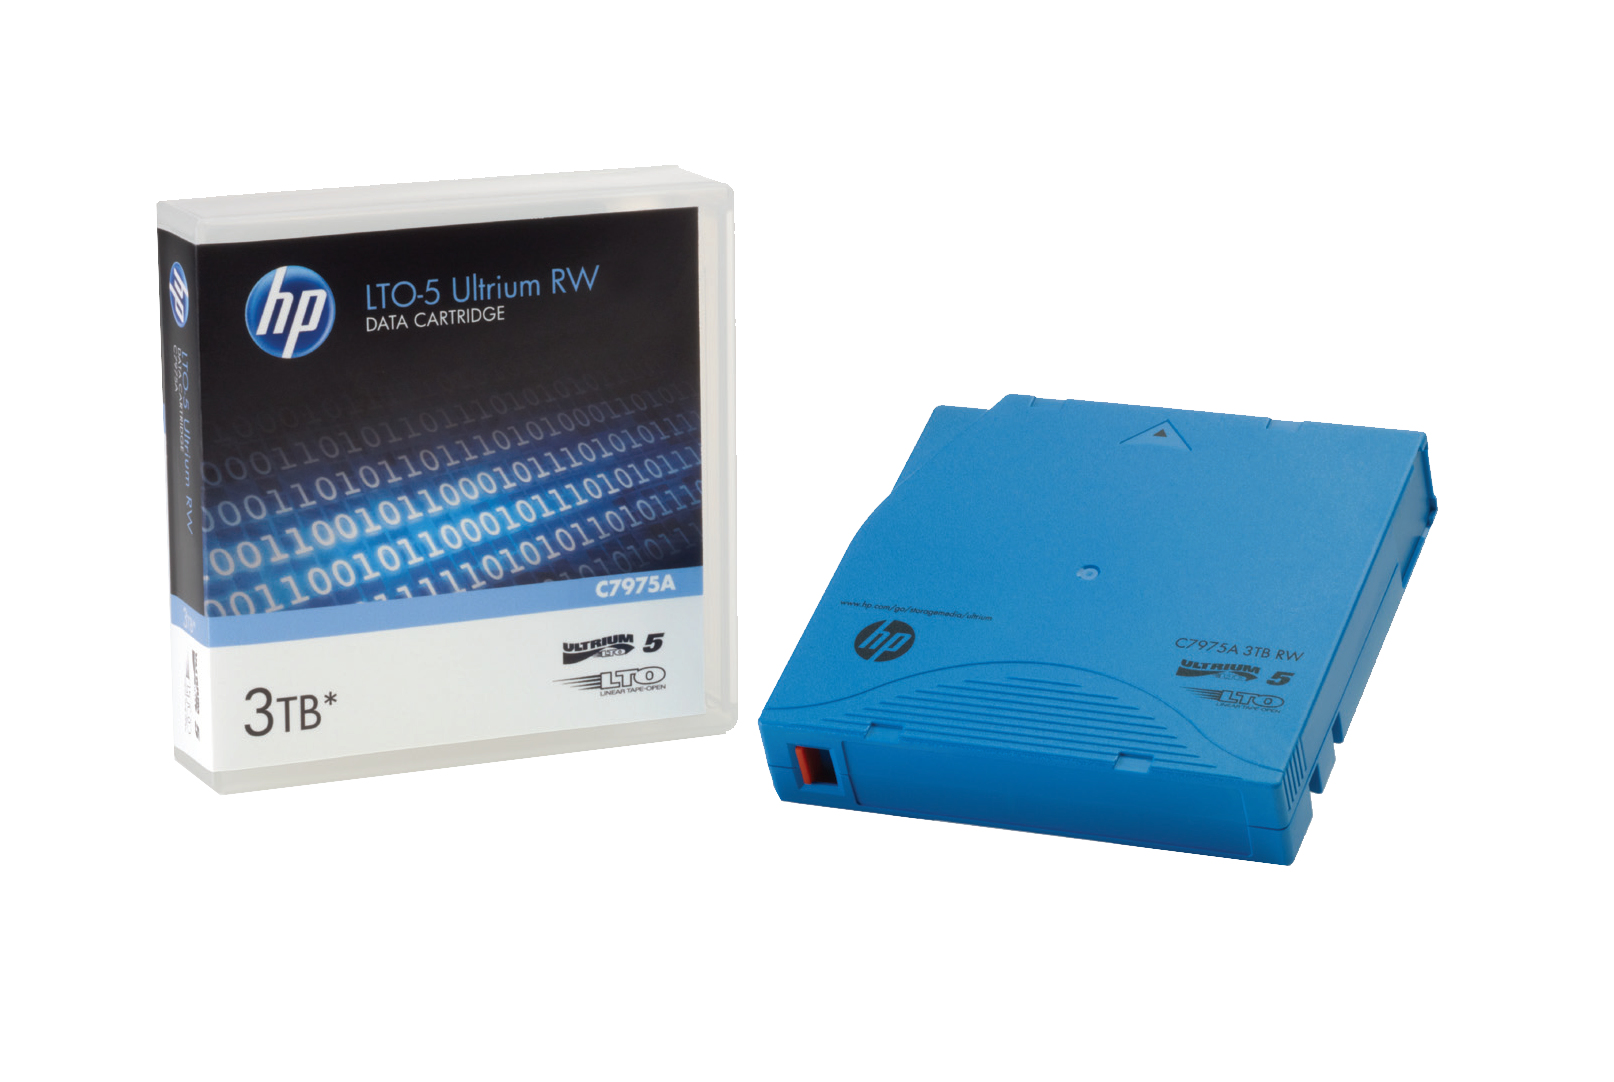 HP Ultrium RW Data Cartridge - LTO Ultrium 5 - 1.5 TB / 3 TB - Light Blue - Storage Media C7975A - C2000